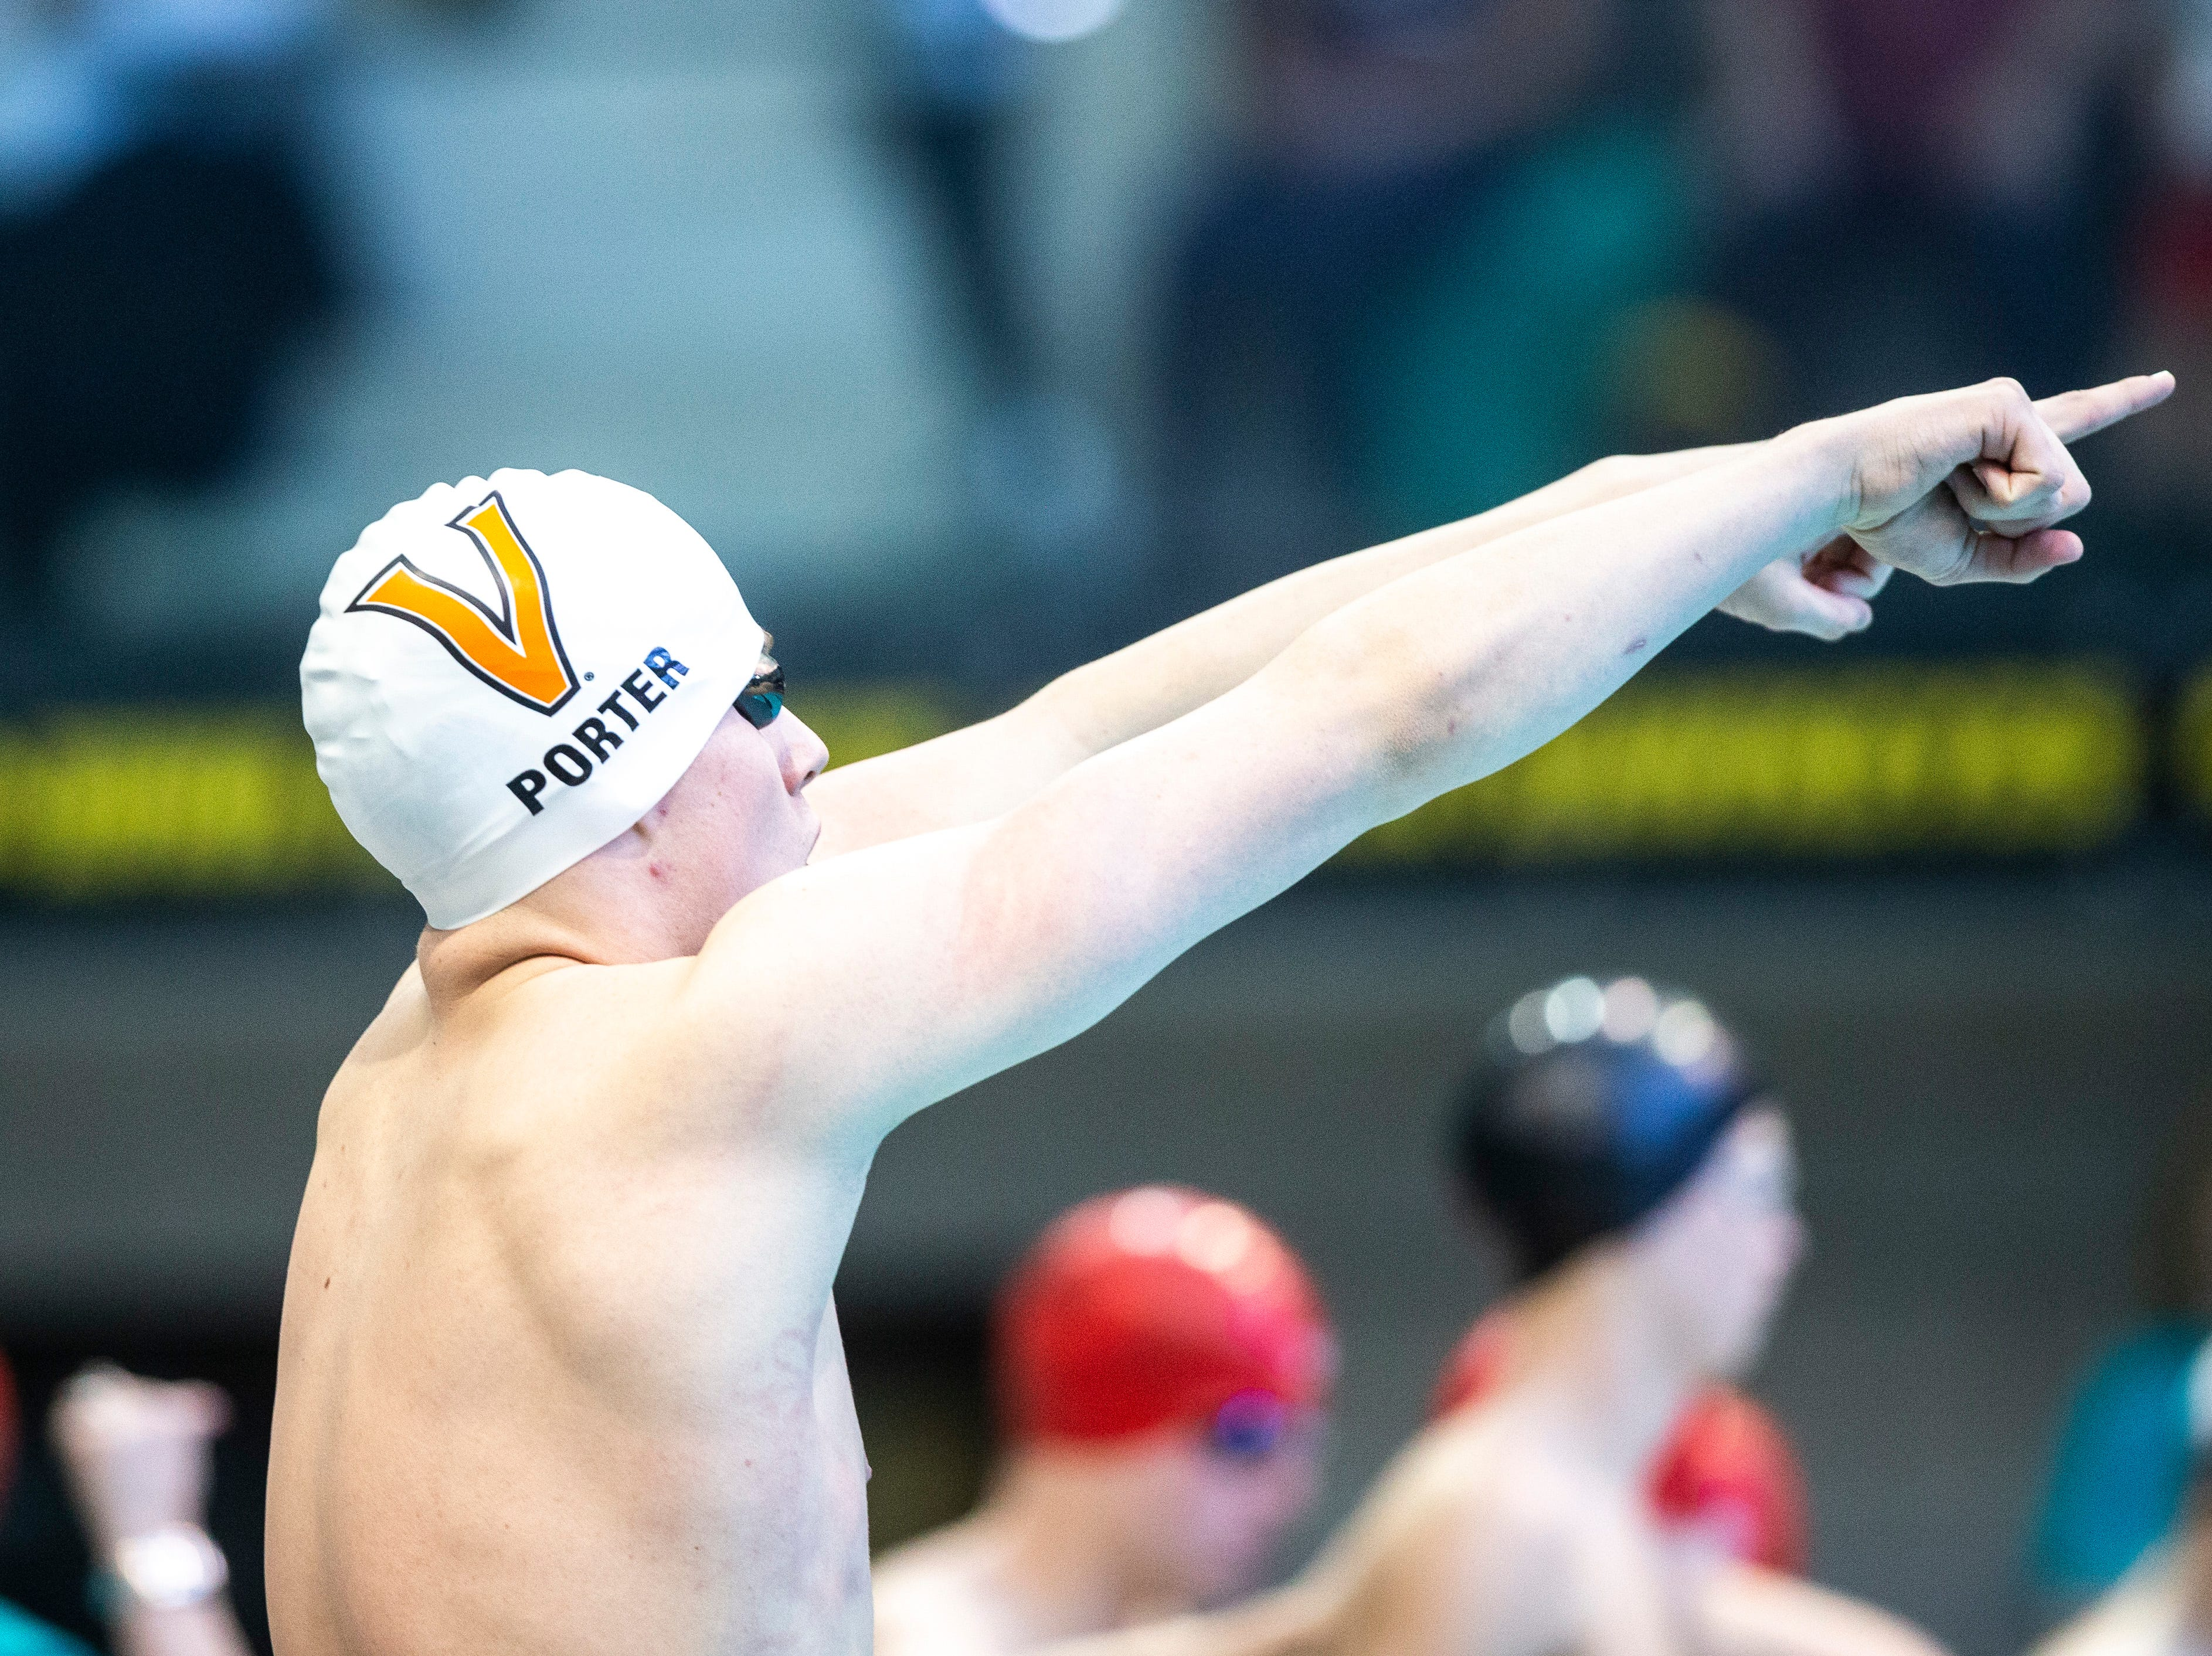 West Des Moines Valley senior Evan Porter gestures to fans before the start of the 200 yard medley relay during the Iowa boys' state swimming regional championship meet on Saturday, Feb. 9, 2019 at Campus Recreation and Wellness Center on the University of Iowa campus in Iowa City, Iowa. Valley finished tenth overall, with a time of 1:37.45.